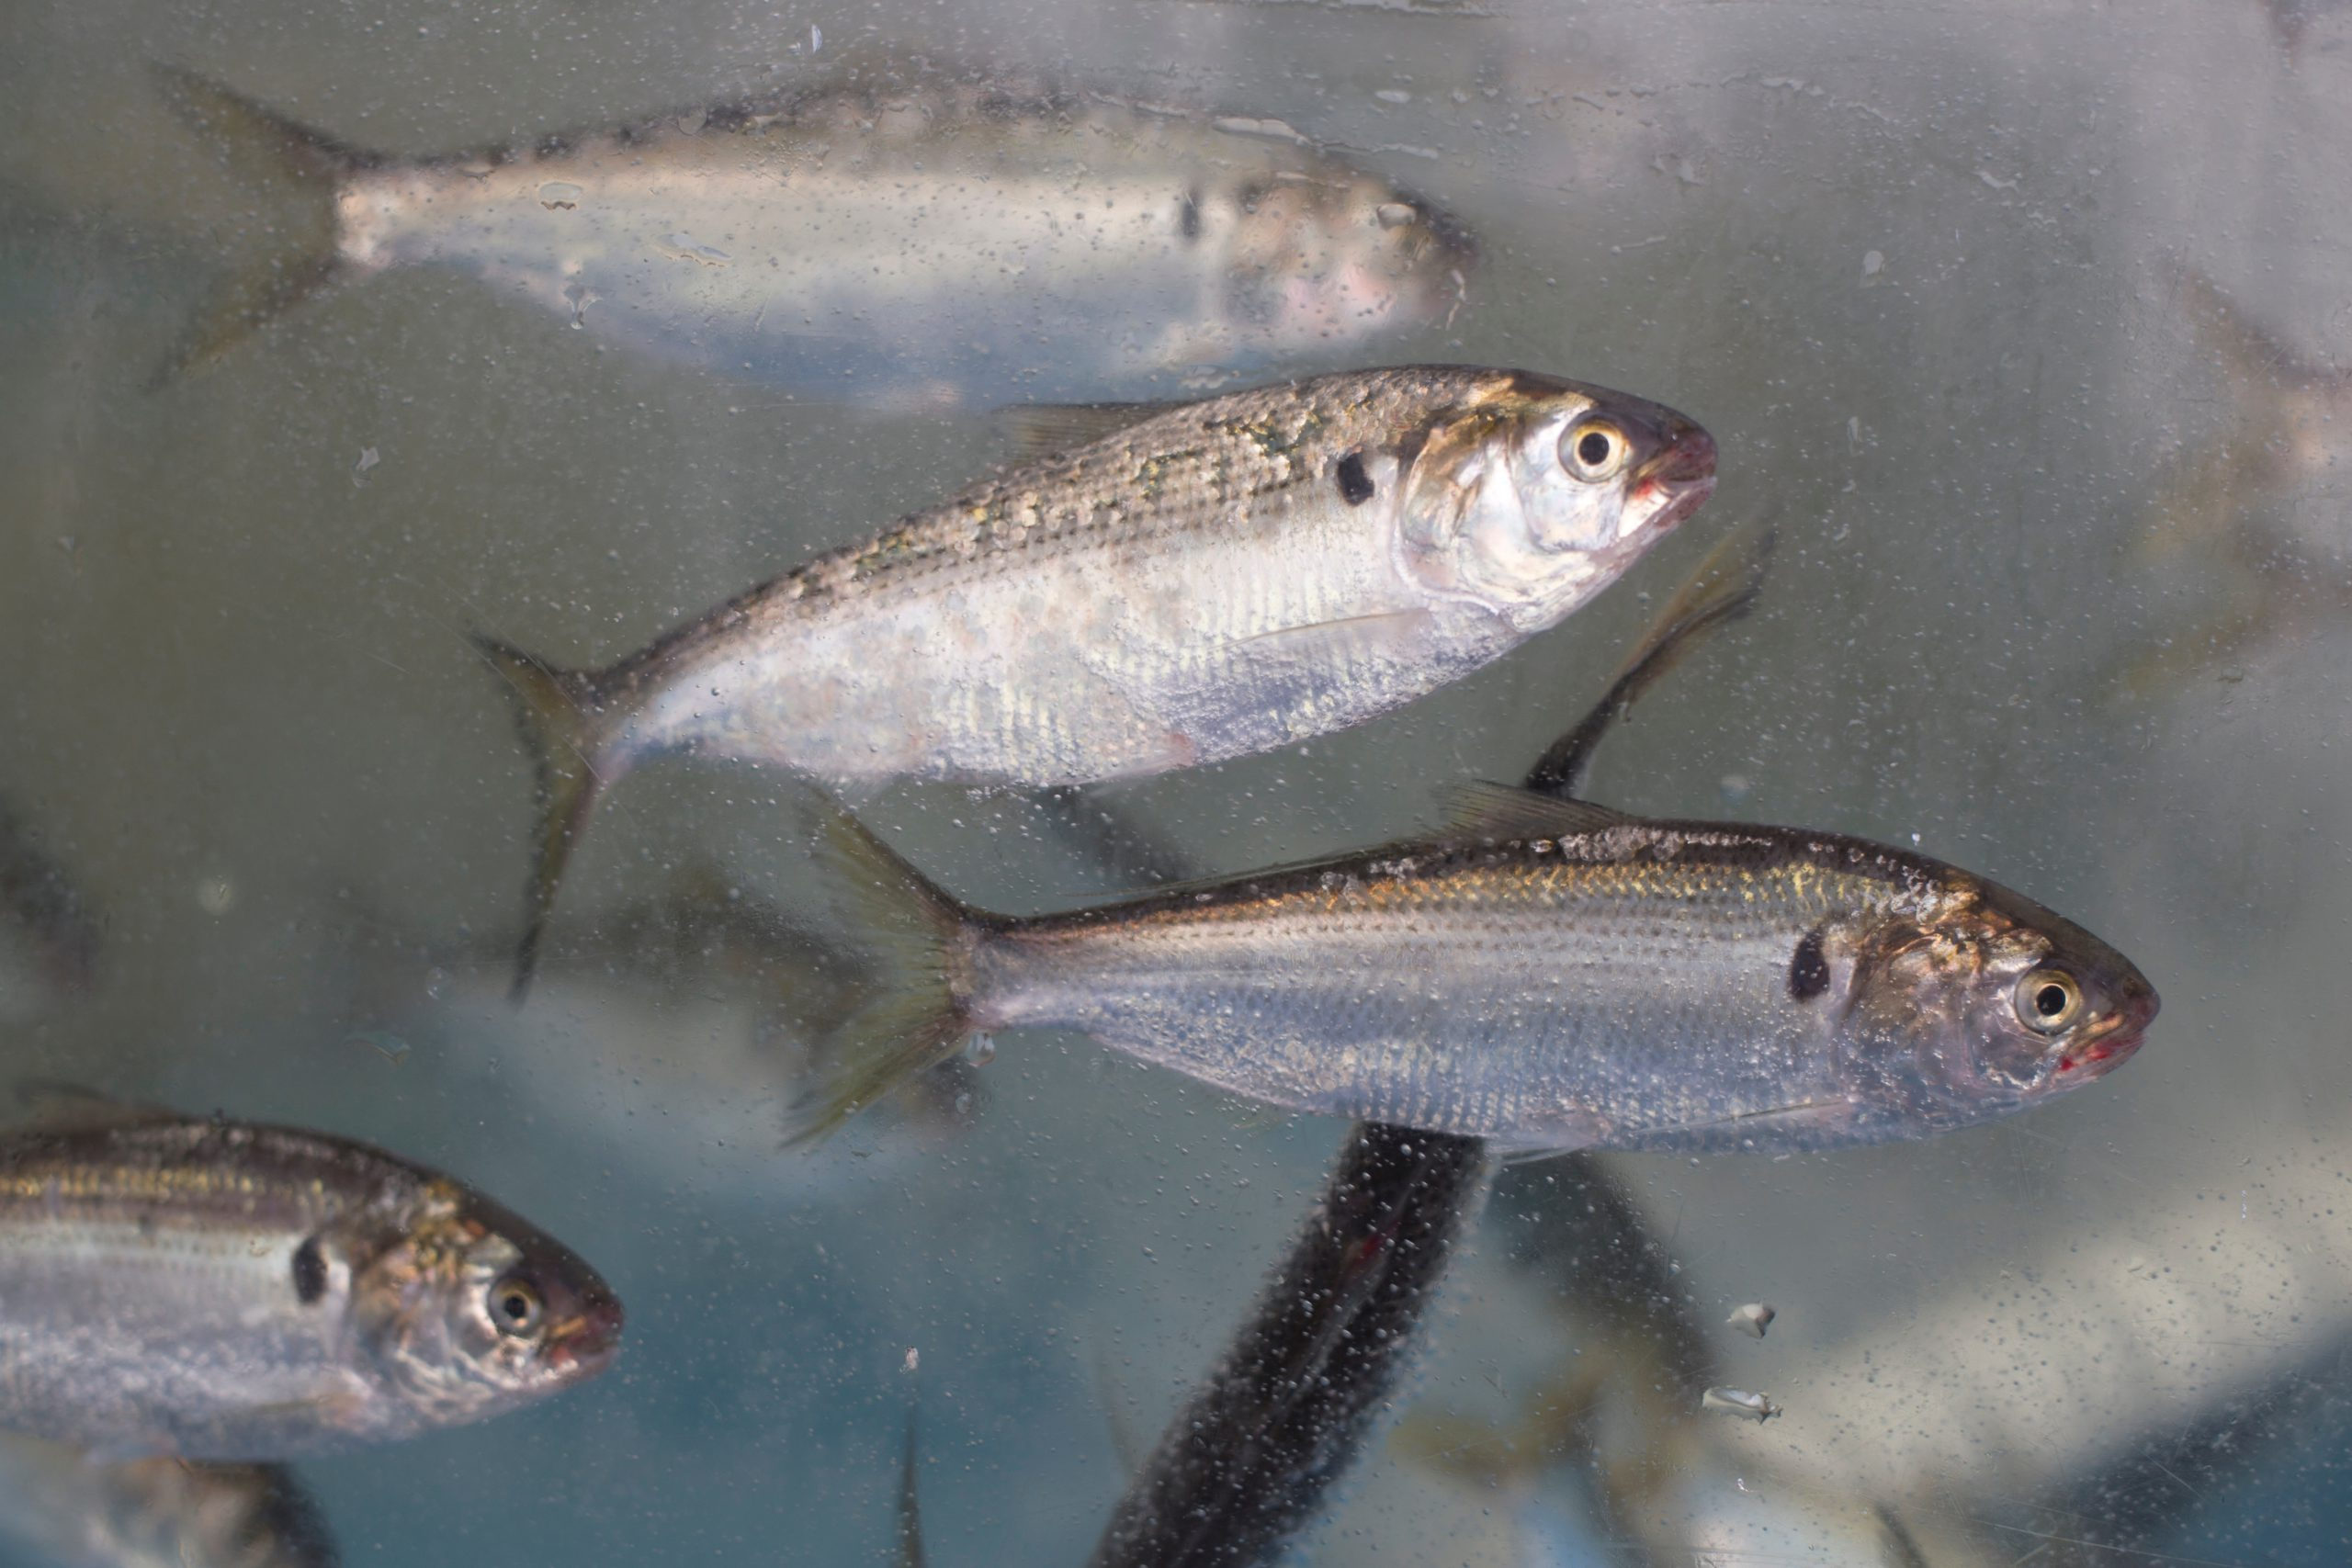 Gizzard shad underwater in a school of fish.